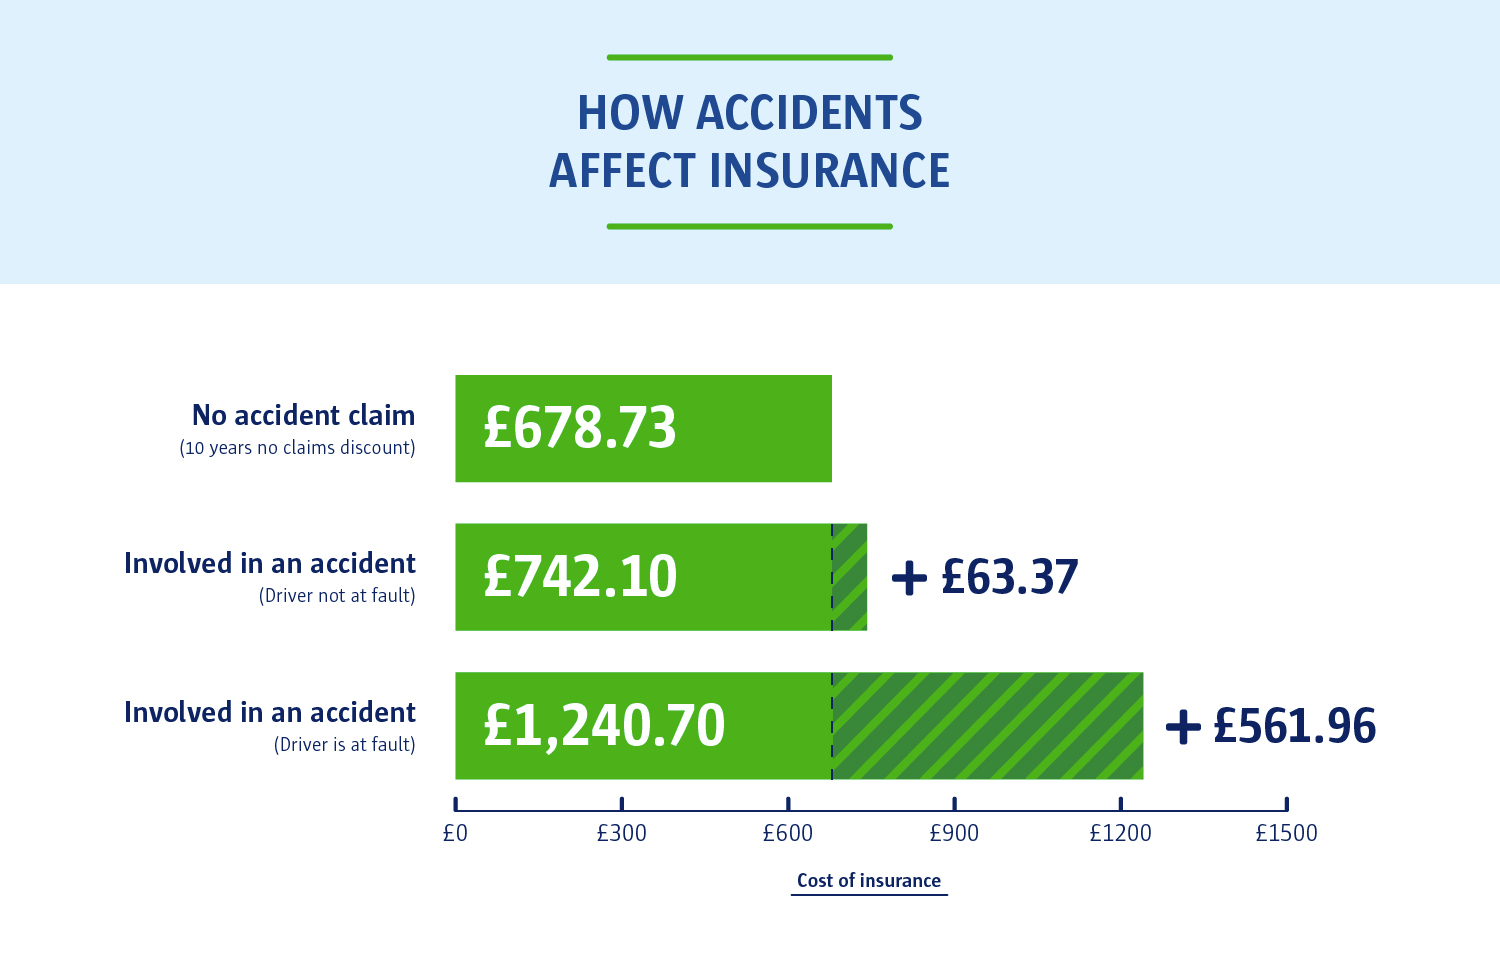 A graph to show 'How accidents affect insurance'. A driver who was involved in an accident that was not their fault cost them £742.10 for their car insurance.